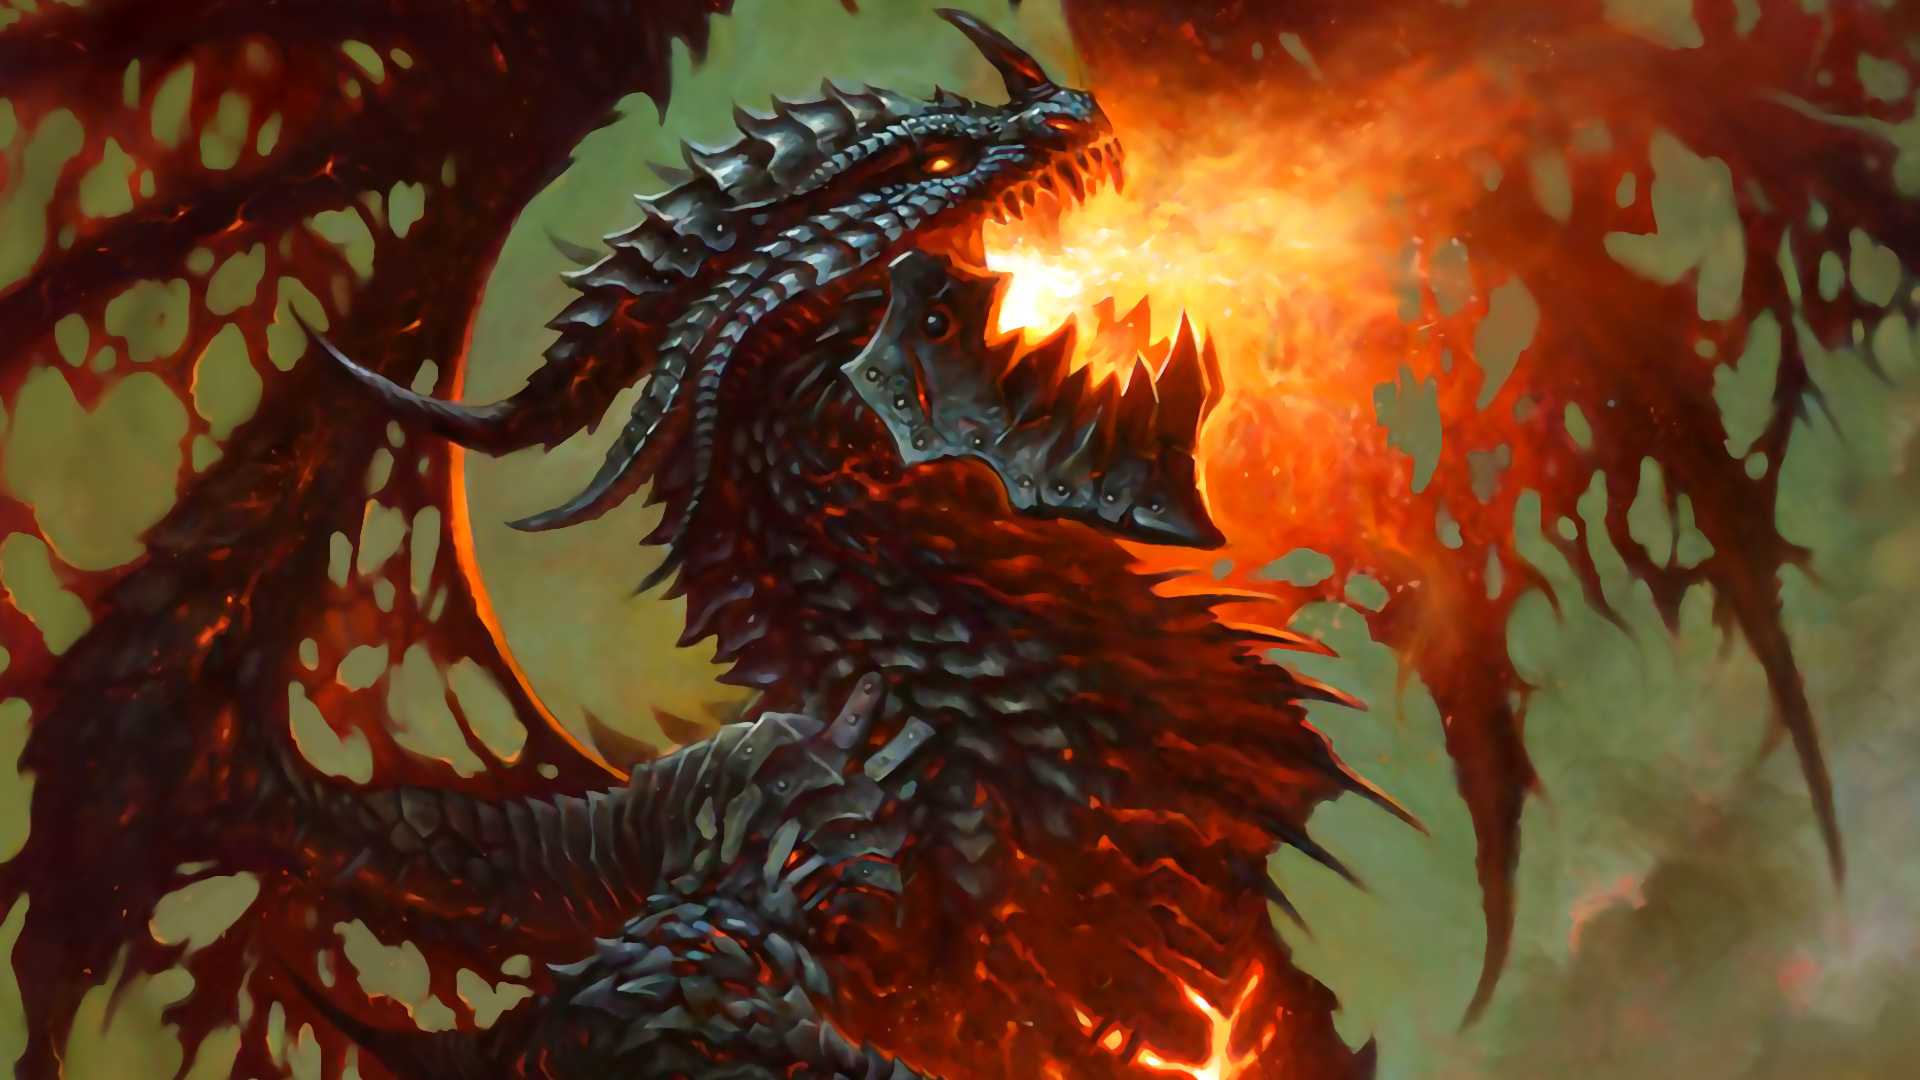 image of Deathwing, Dragonlord